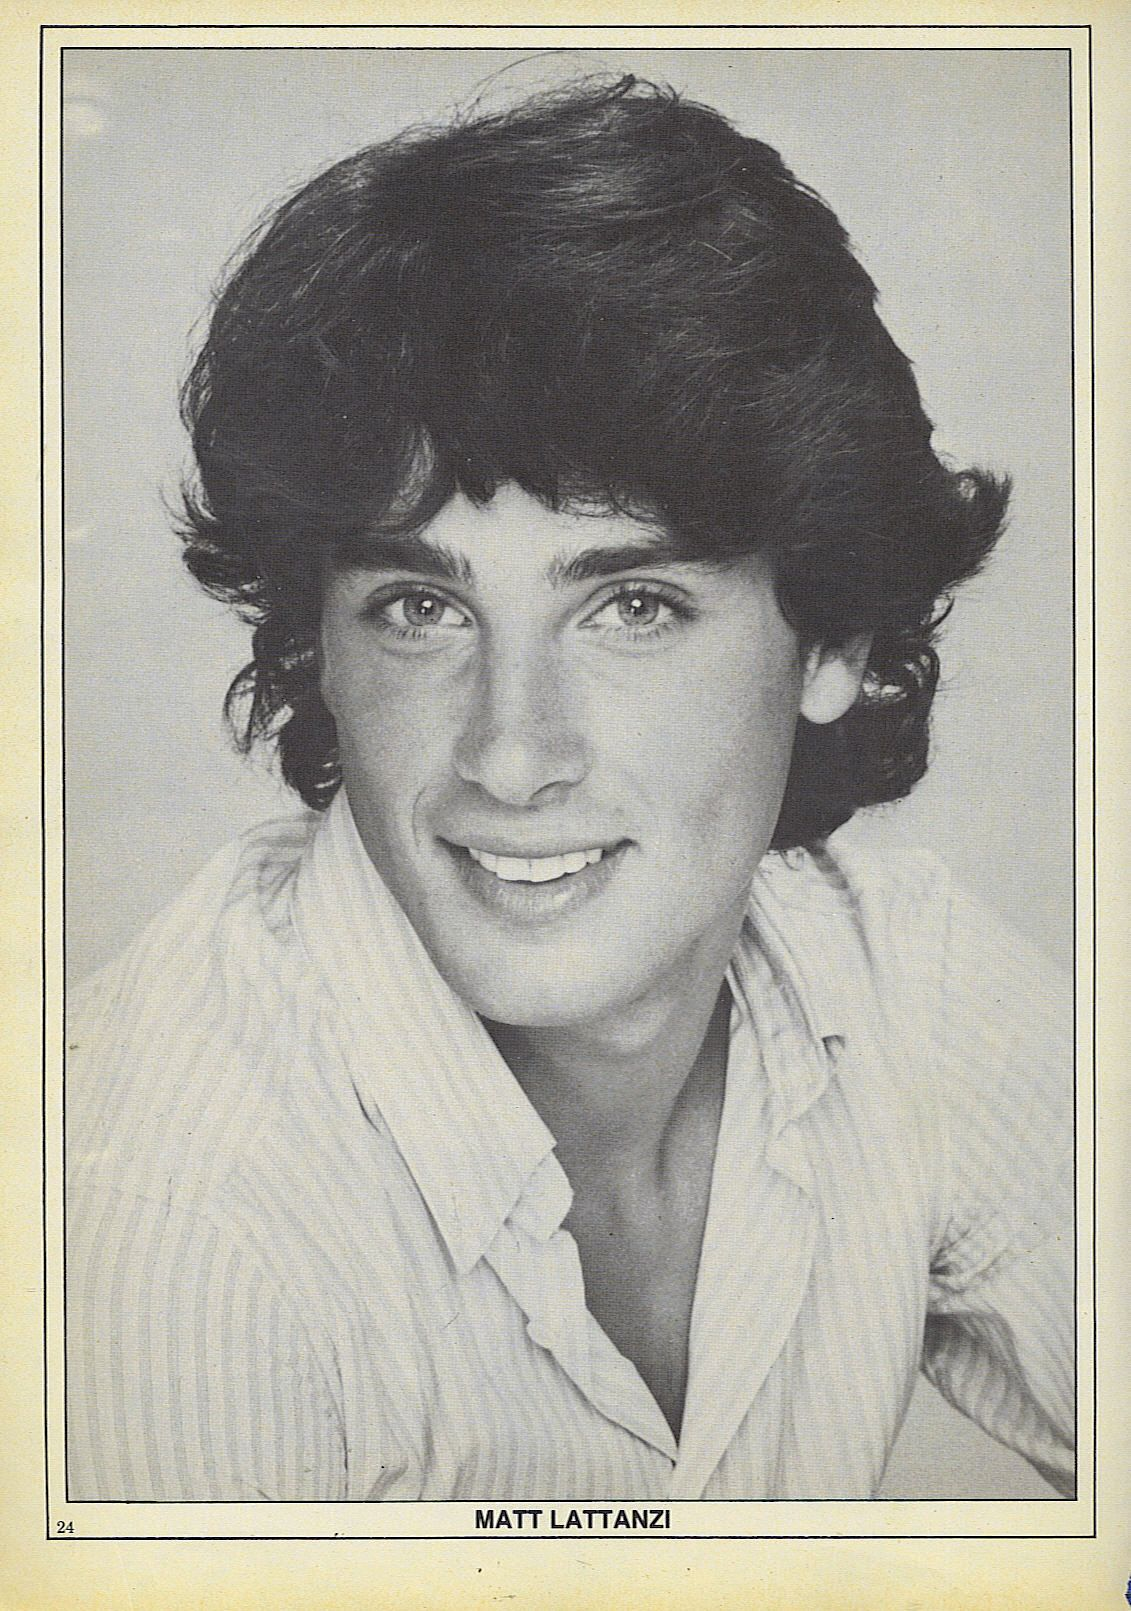 matt lattanzi made his film debut in 1980 in xanadu where